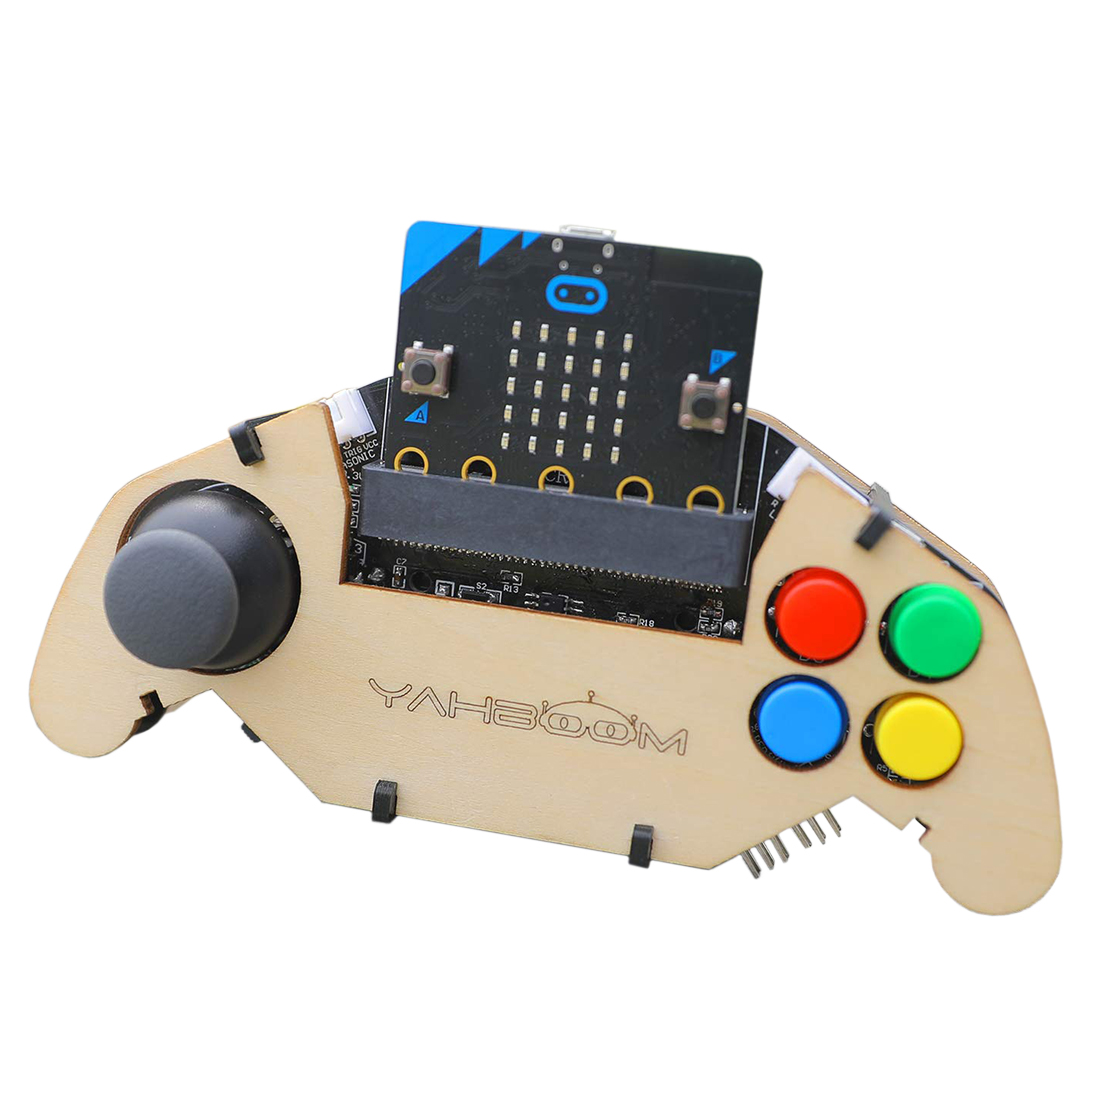 Micro:Bit Gamepad Expansion Board Handle Microbit Robot Car Joystick STEM Toys Kids Boys Programming Toy Game Controller